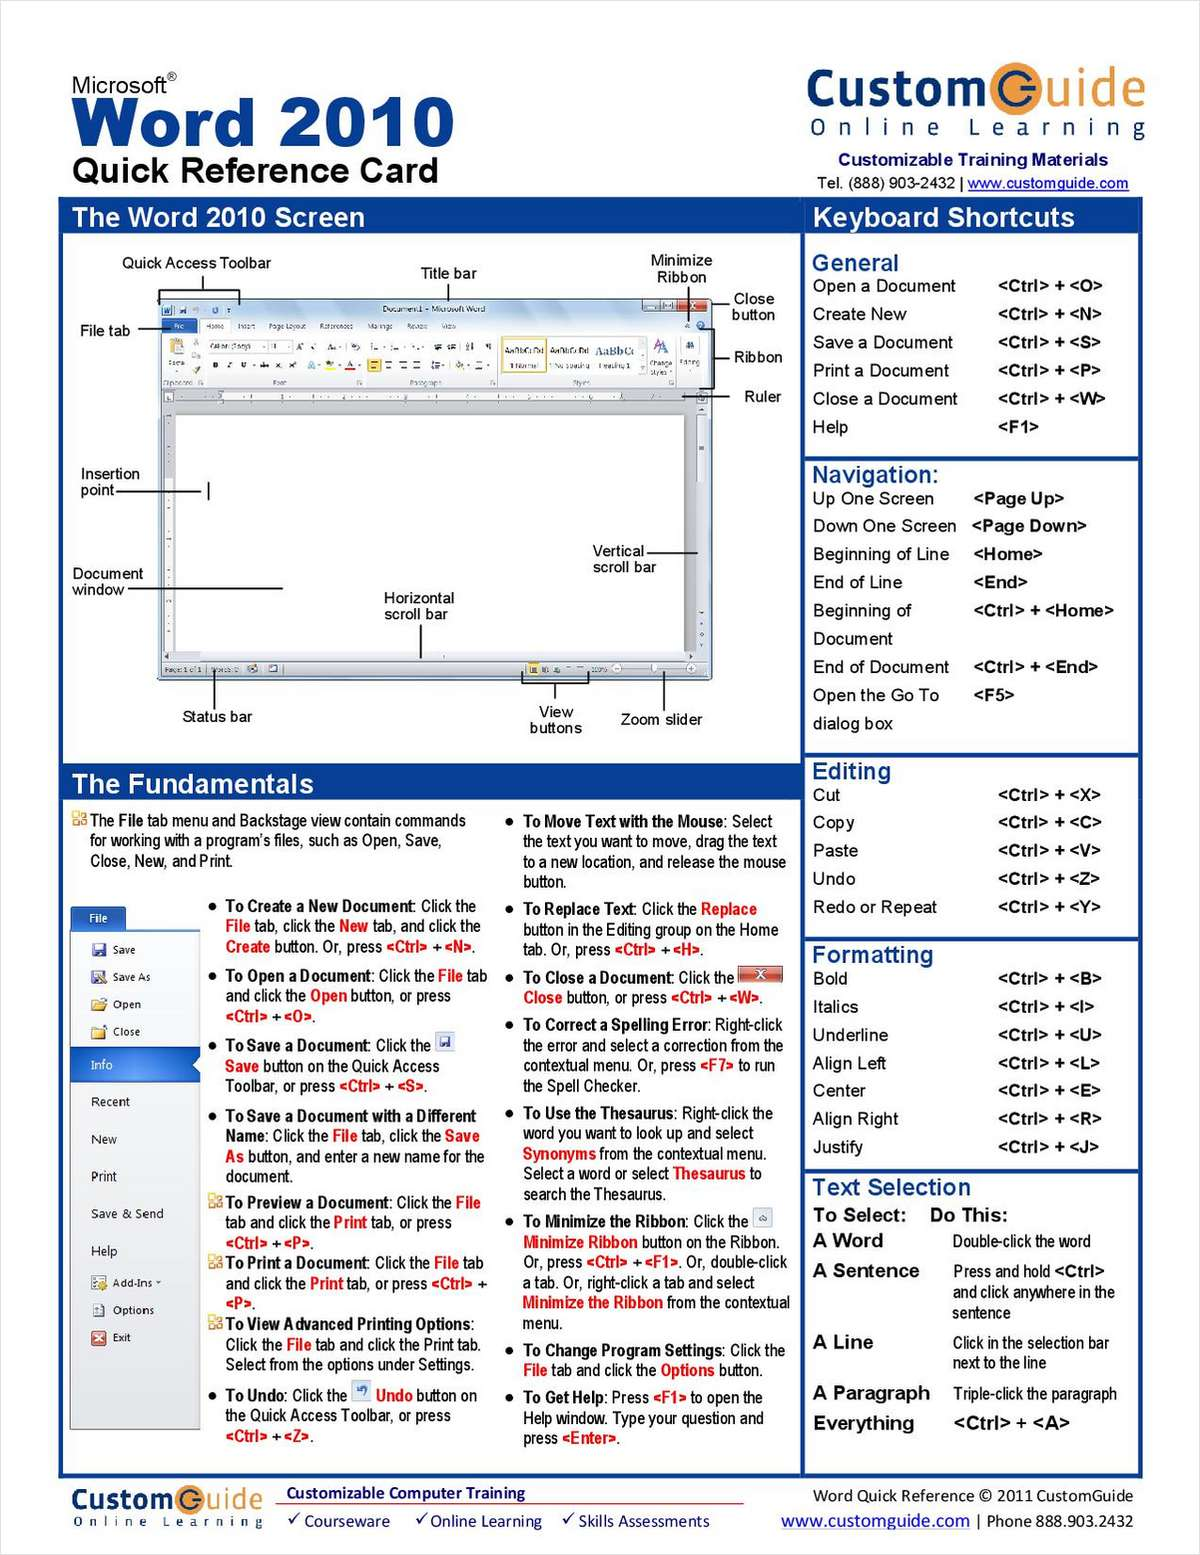 Microsoft Word 2010 - Free Quick Reference Card